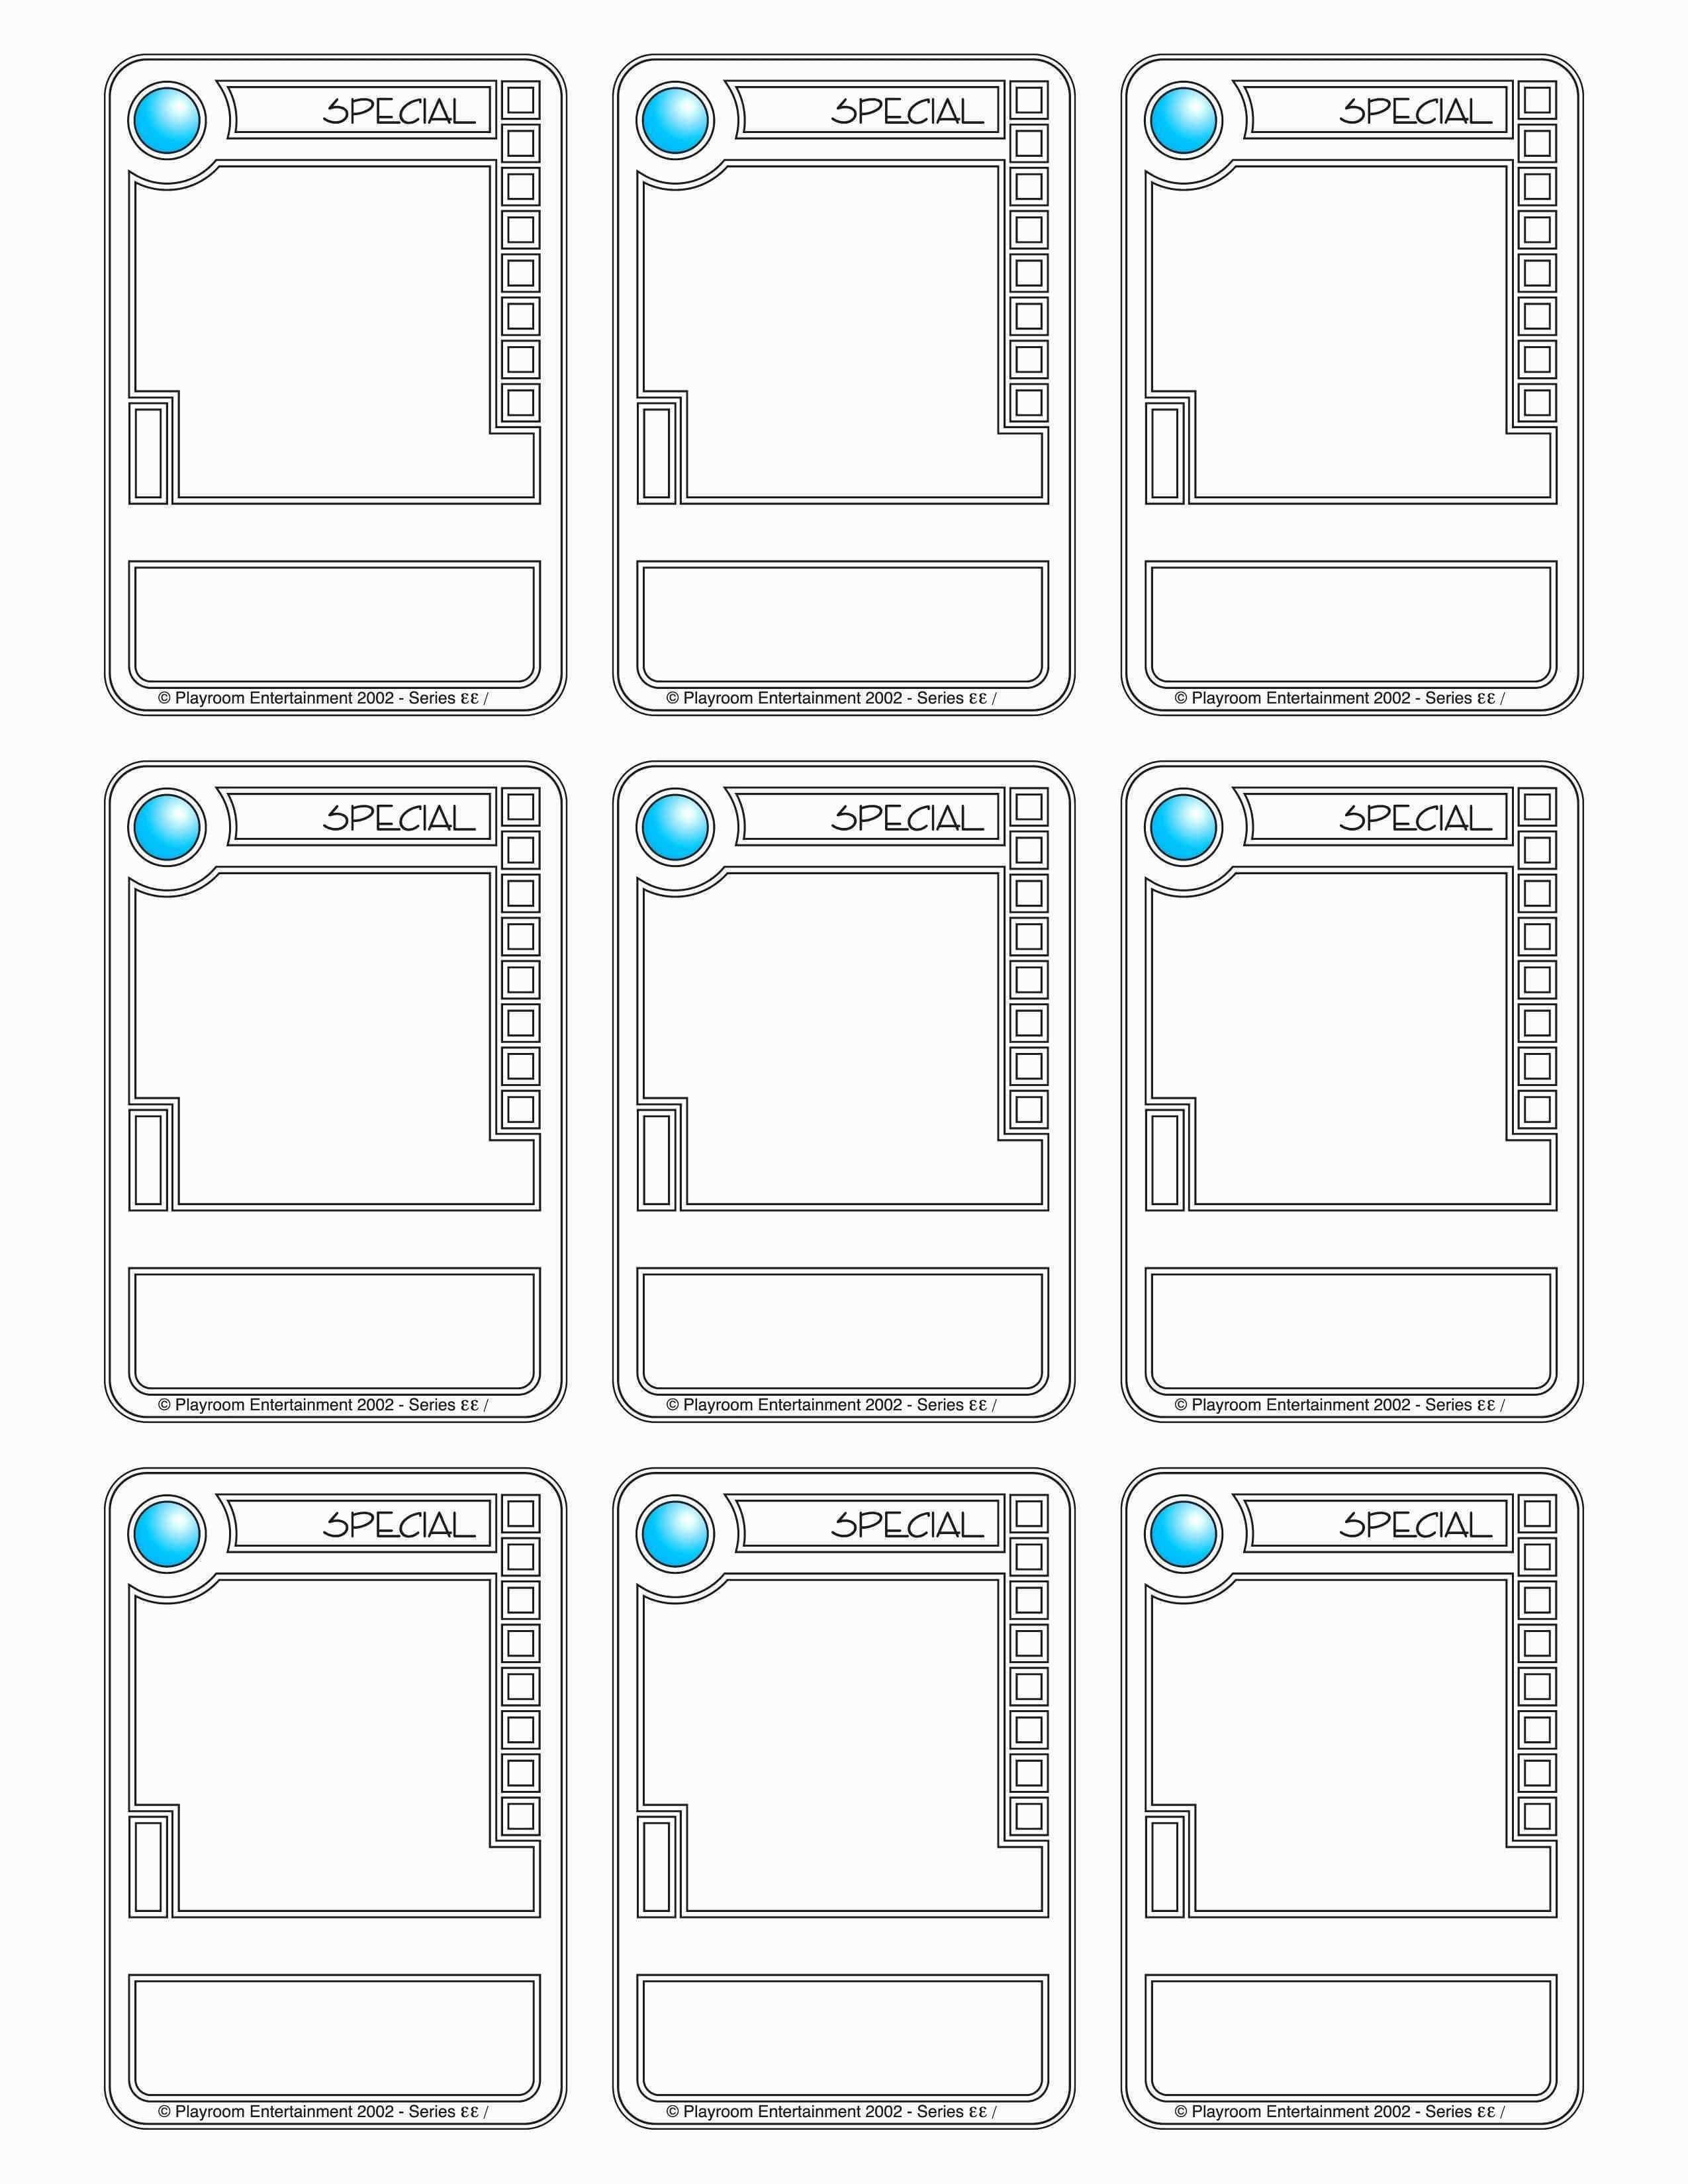 001 Examples Free Trading Card Template Maker For Success In inside Free Trading Card Template Download